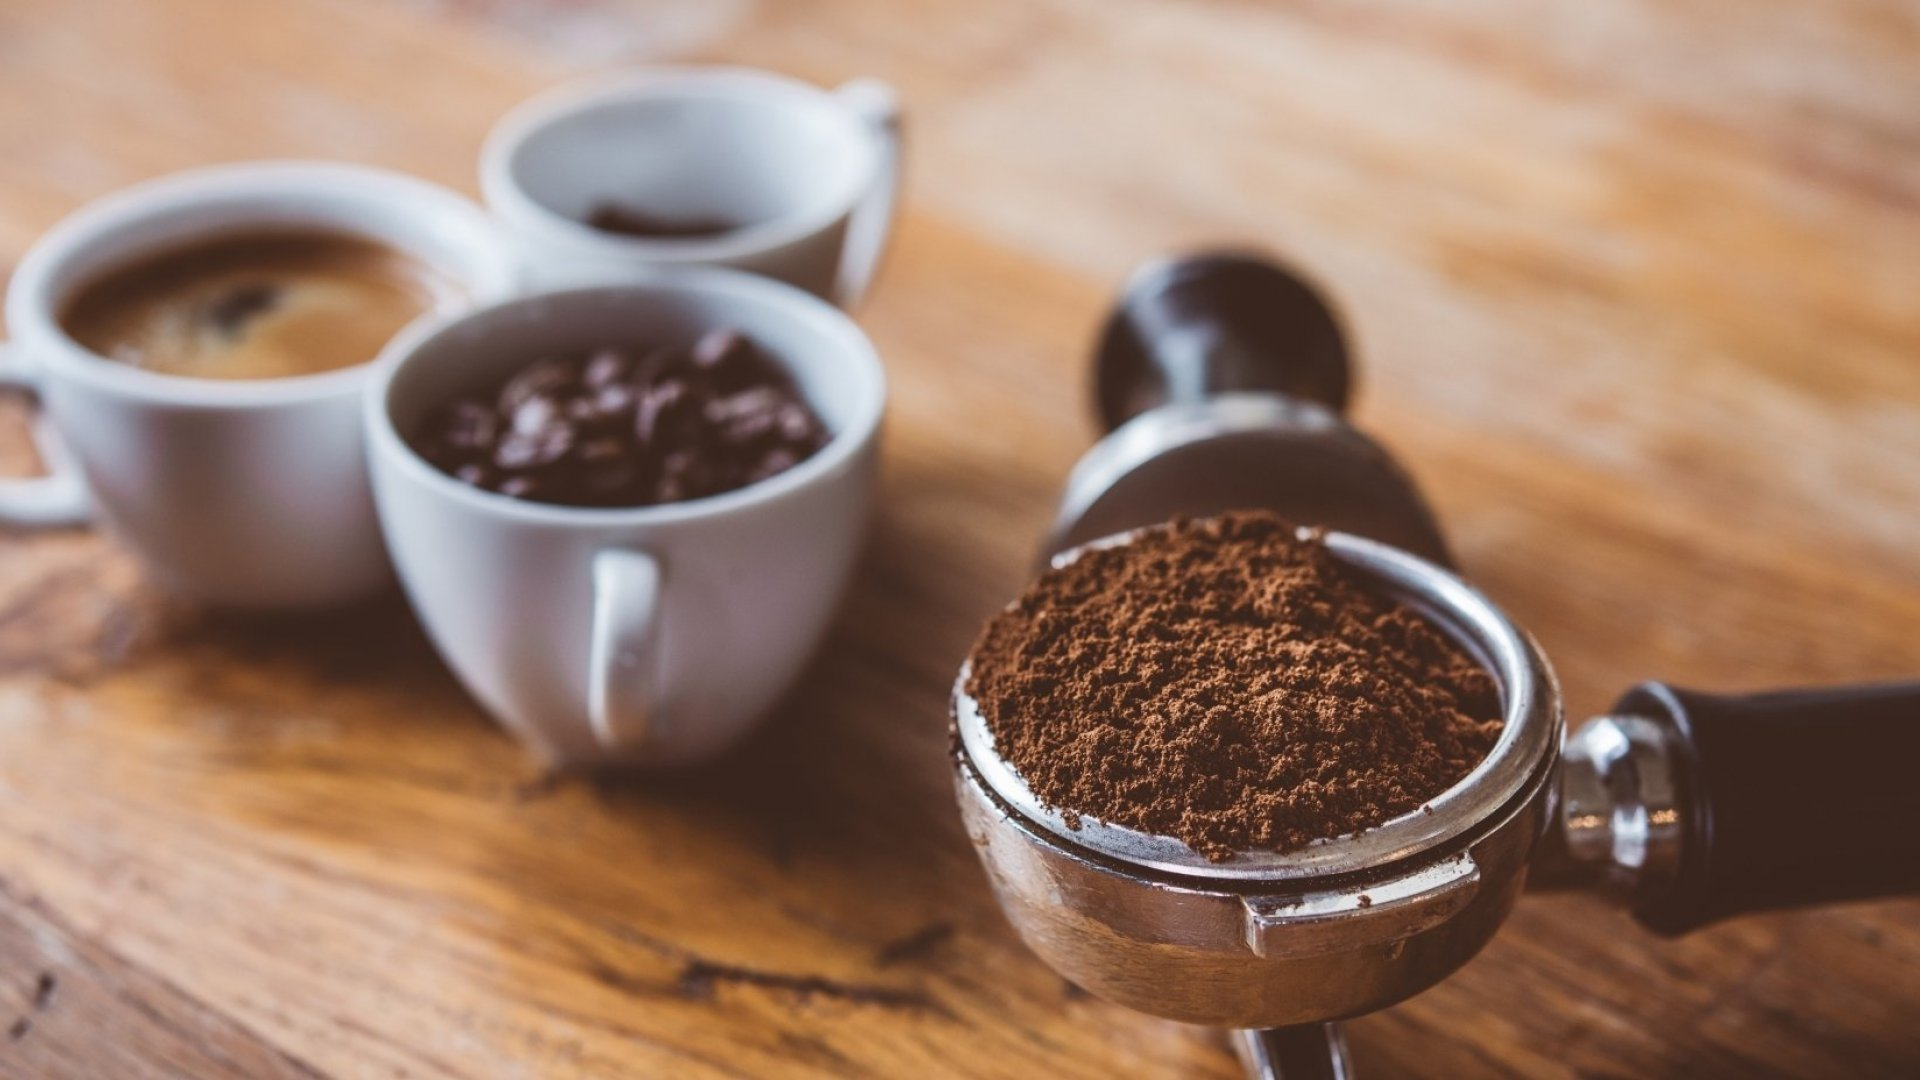 3 Ways to Use Coffee to Increase Collaboration and Innovation